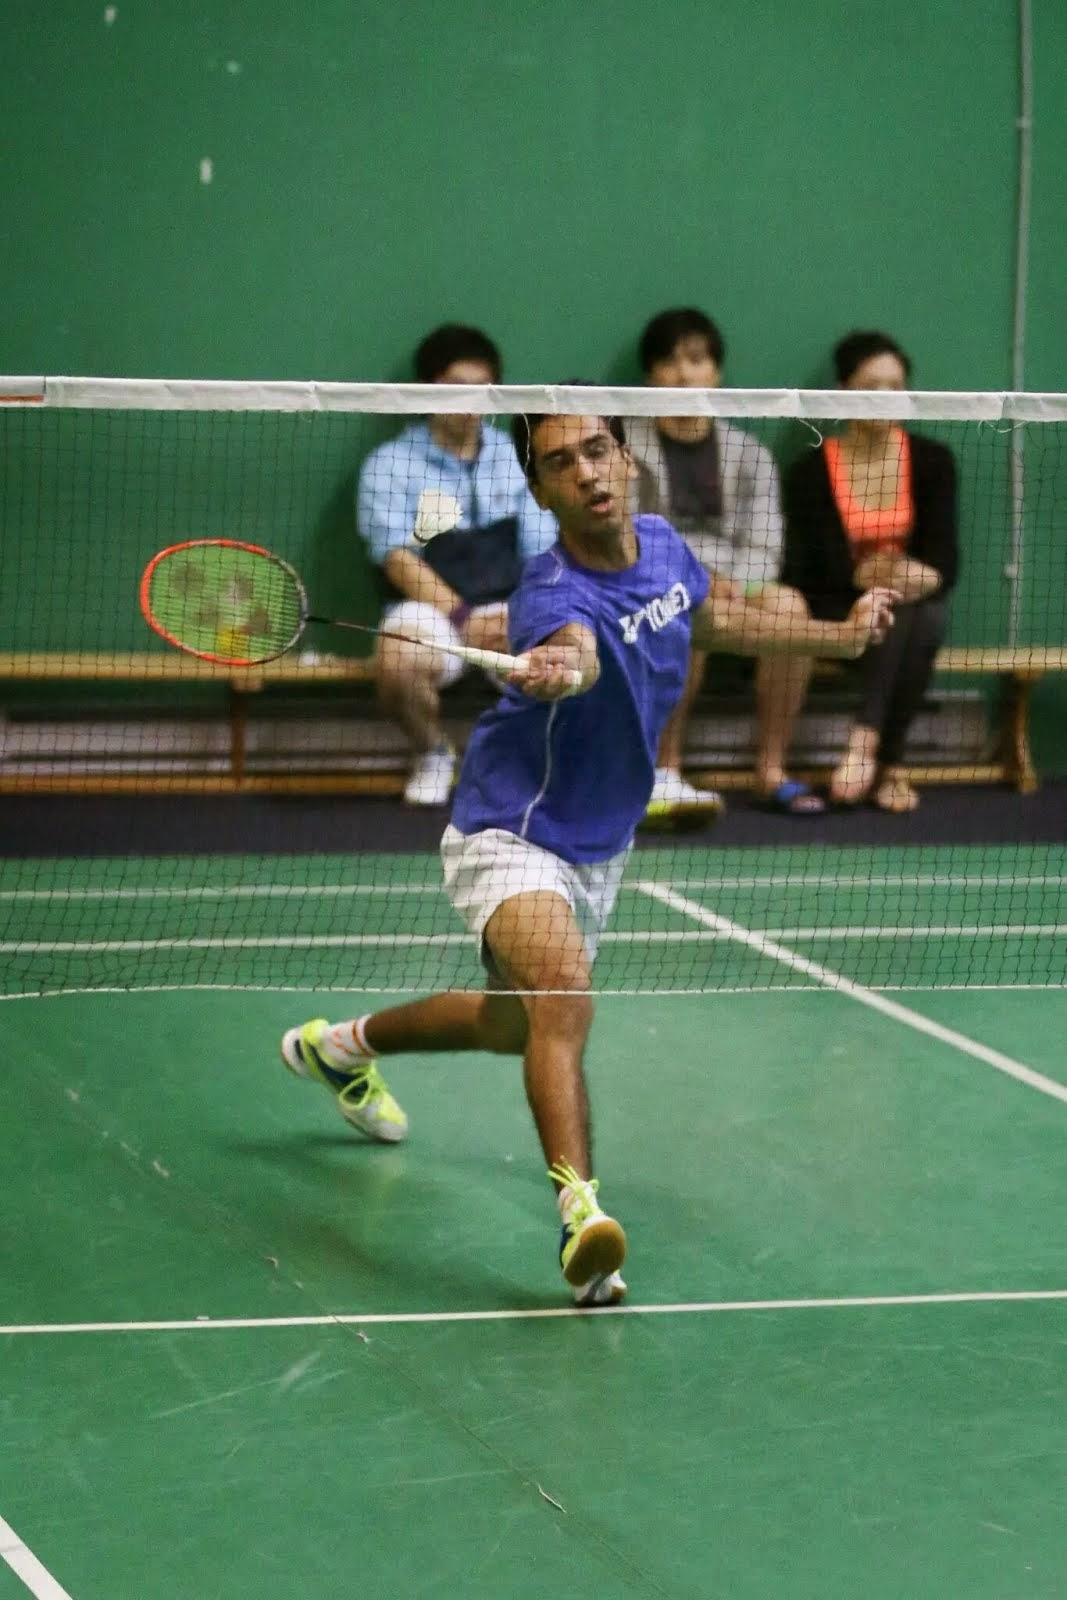 My Badminton and Life Blog